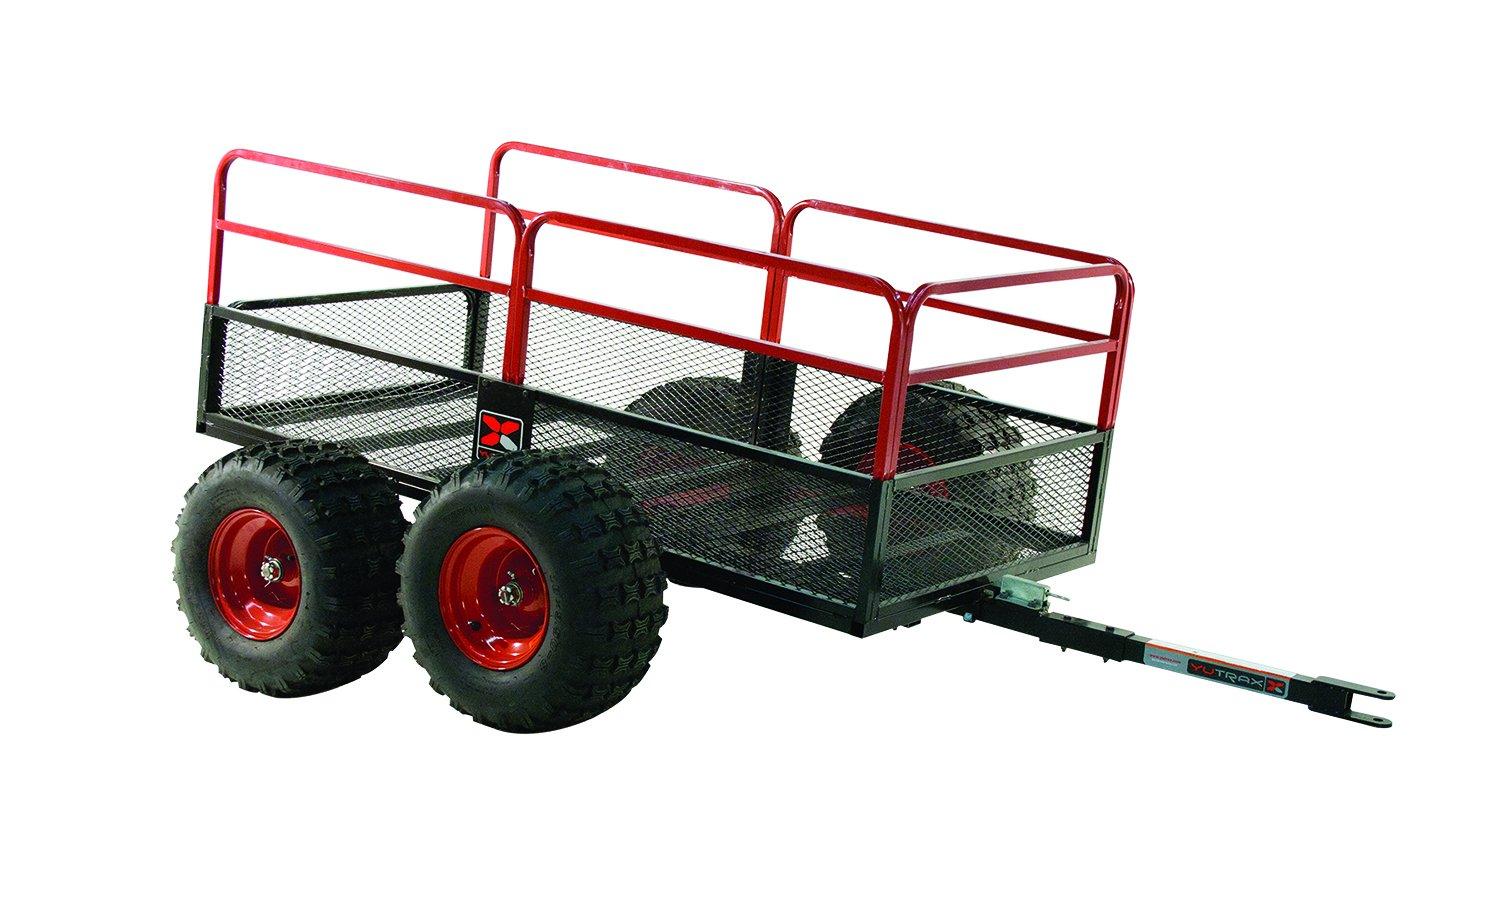 Yutrax TX159 Trail Warrior X4 ATV Utility Trailer - For Off-Road Use by Yutrax